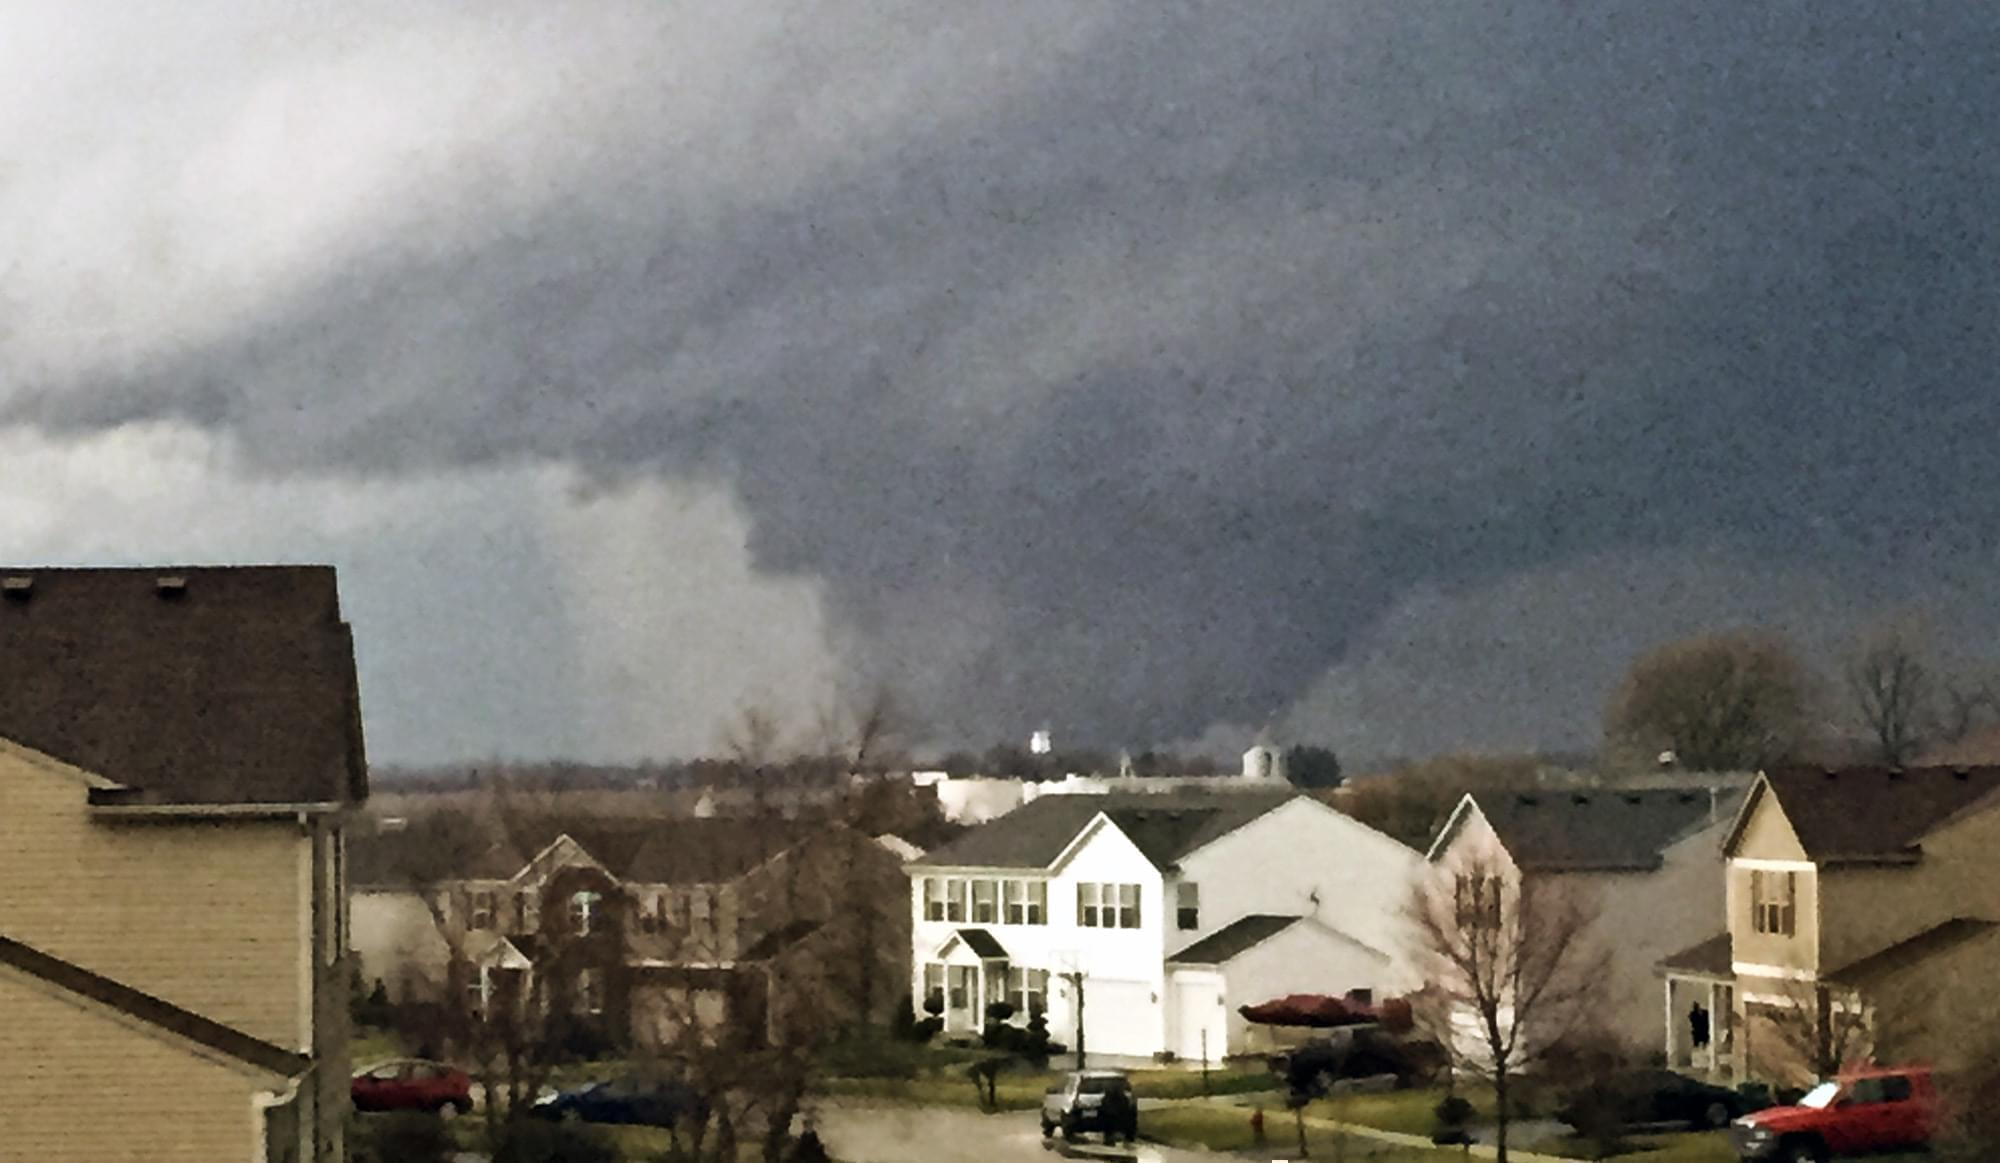 A tornado is viewed near Pearl Street from a home  in Kirkland, Ill., on Thursday, April 9, 2015. One person was killed in the tiny community of Fairdale, James Joseph with the Illinois Department of Emergency Management said.